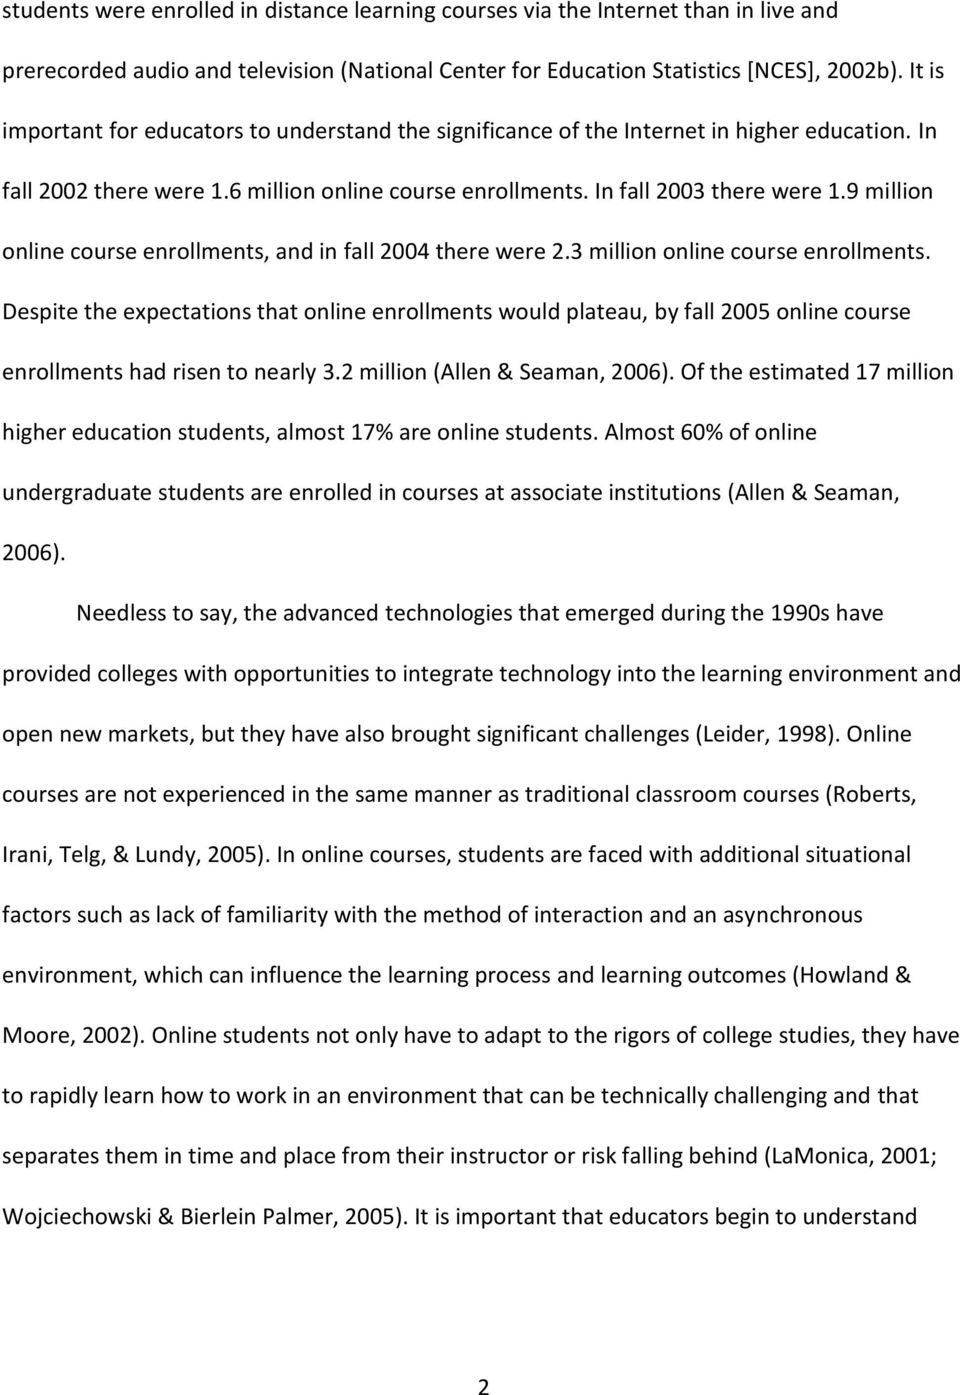 9 million online course enrollments, and in fall 2004 there were 2.3 million online course enrollments.